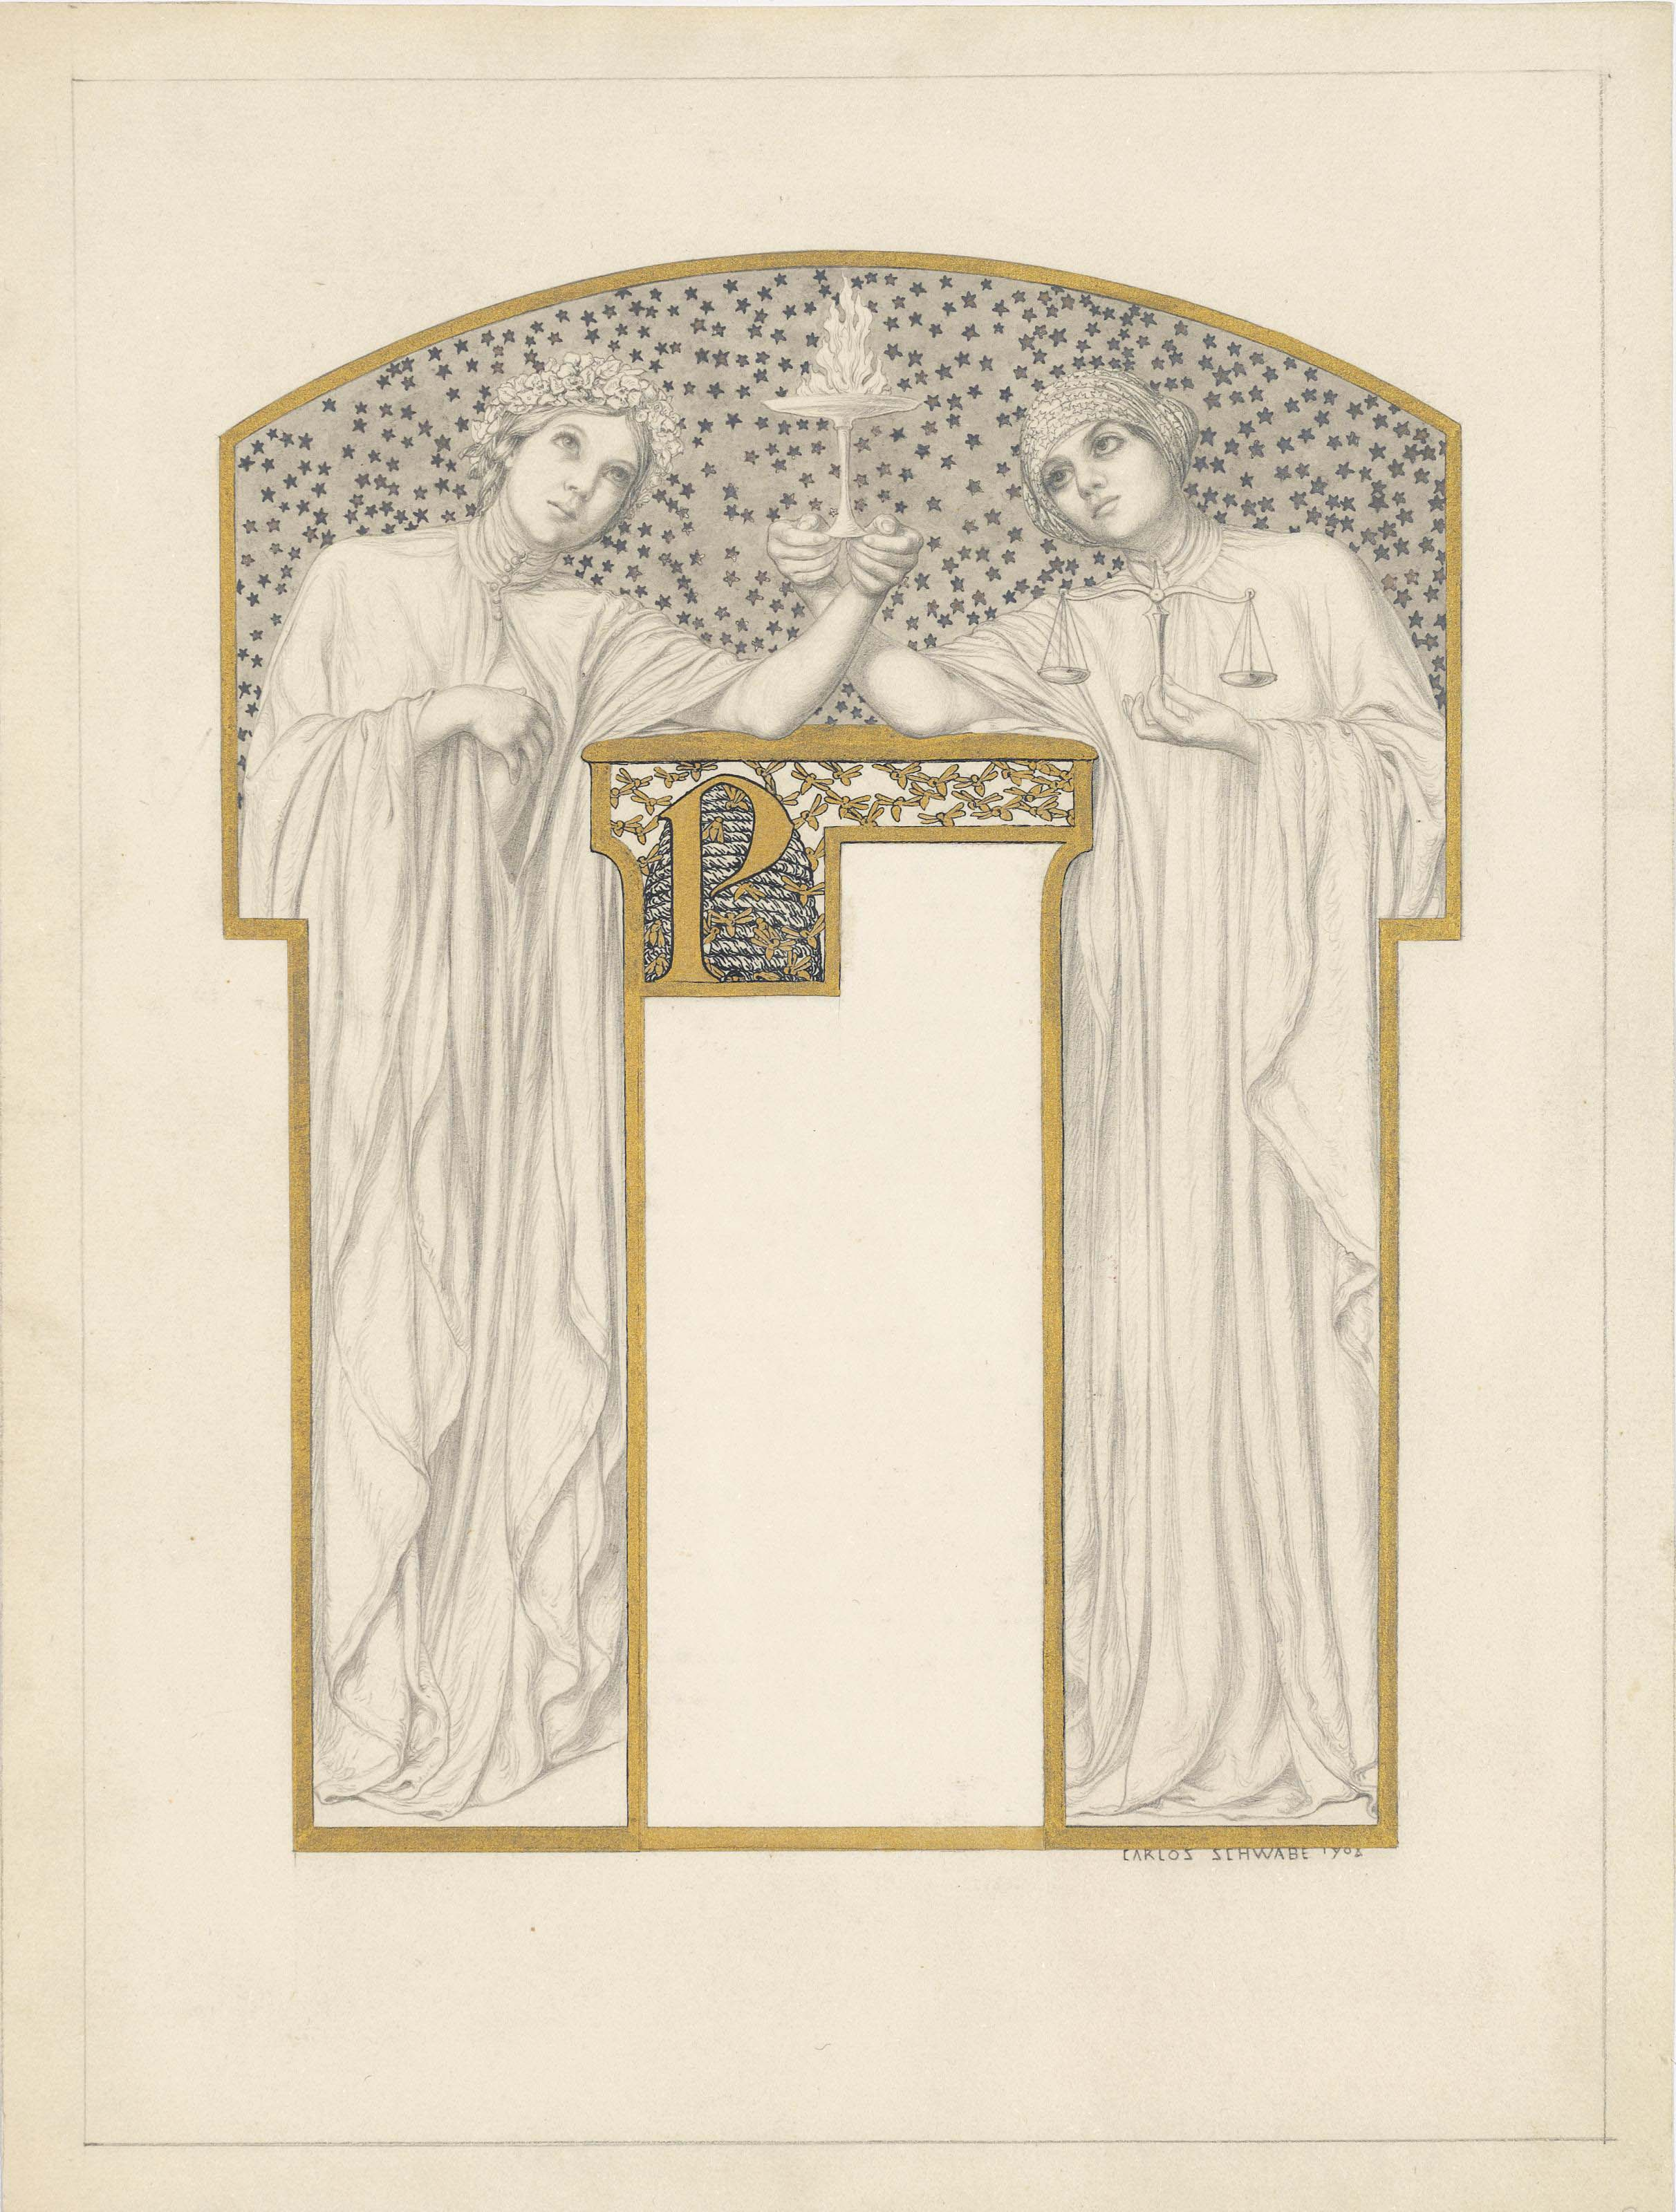 Allegorical figures holding a flaming tazza; design for a chapter heading